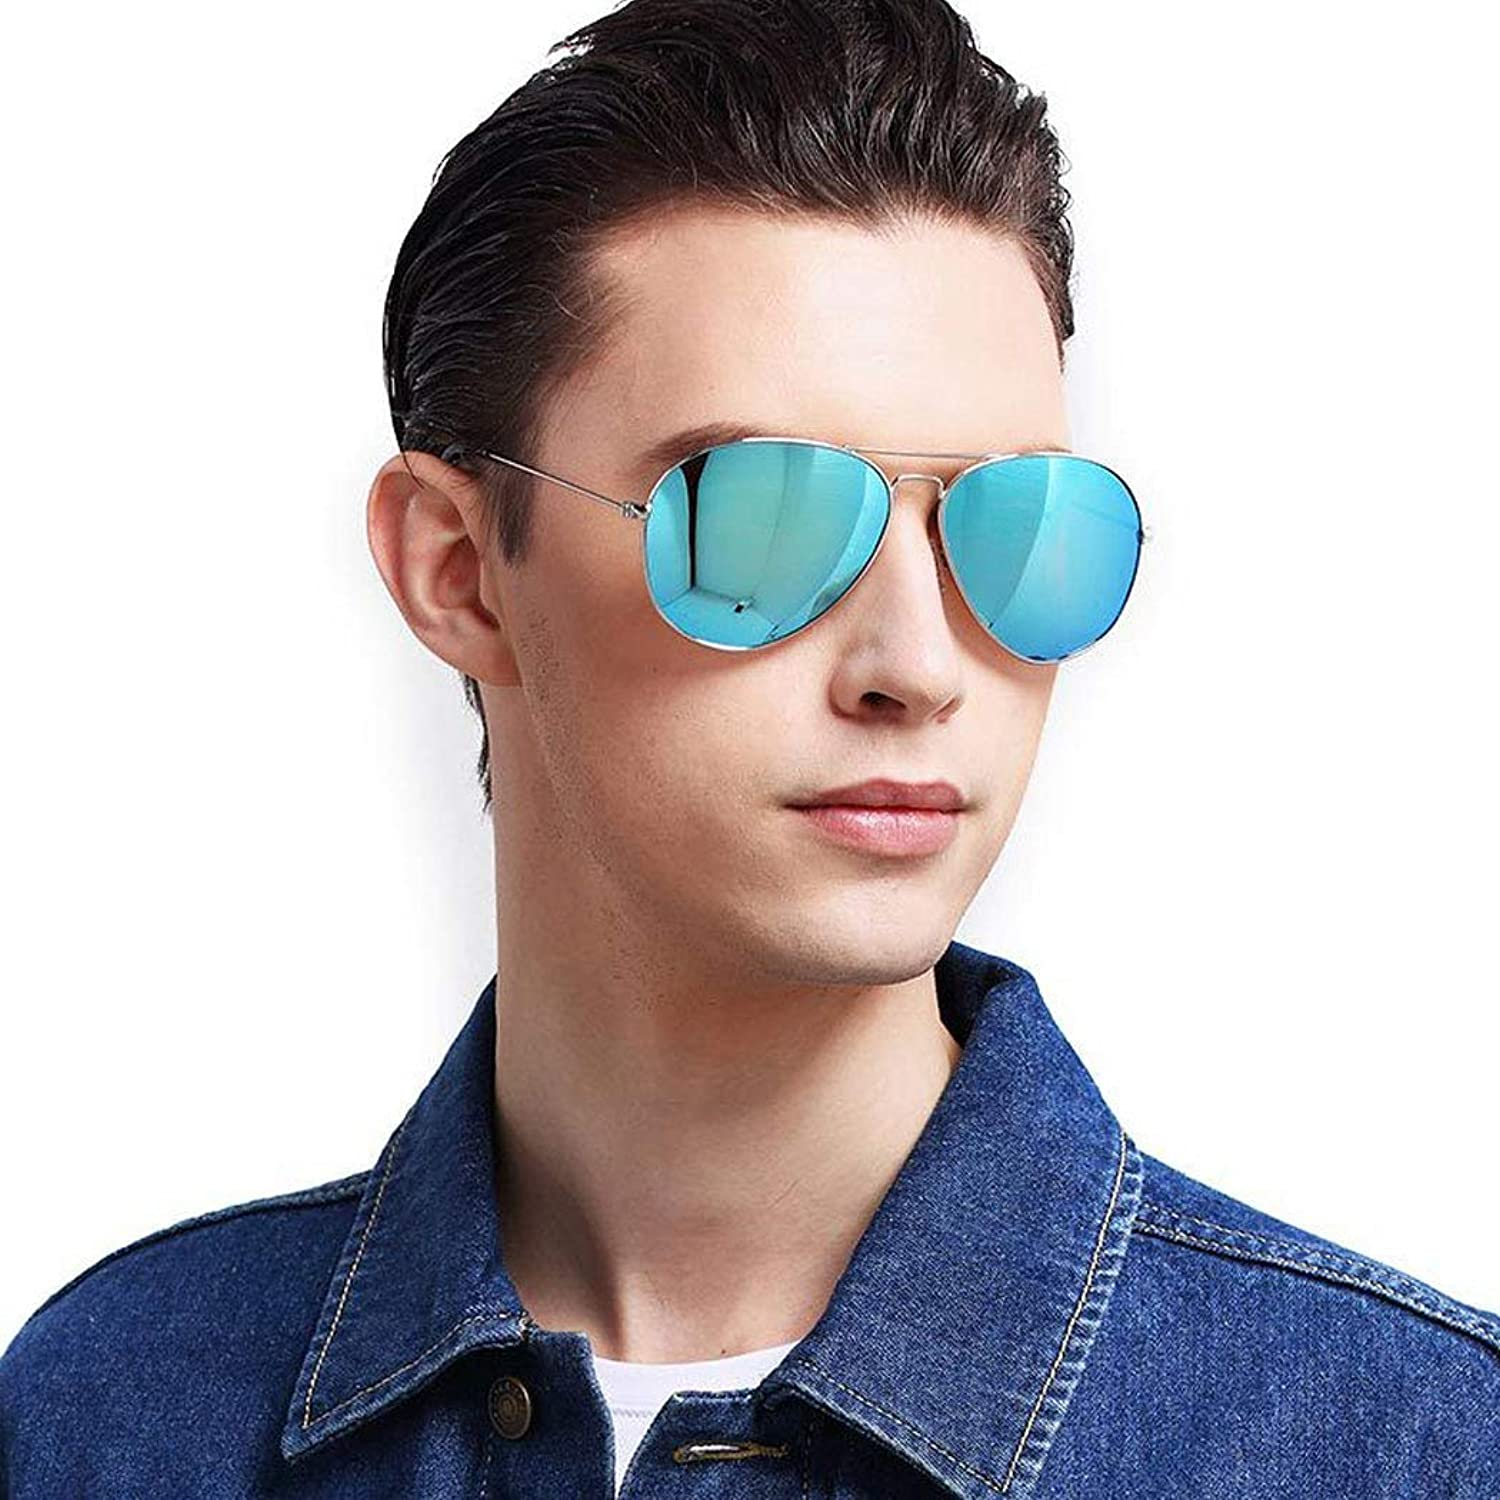 GJFeng Sunglasses Men's Polarized Driving Mirror Sunglasses Men and Women Polarized Sunglasses Unisex Outdoor Sports Driving Fishing